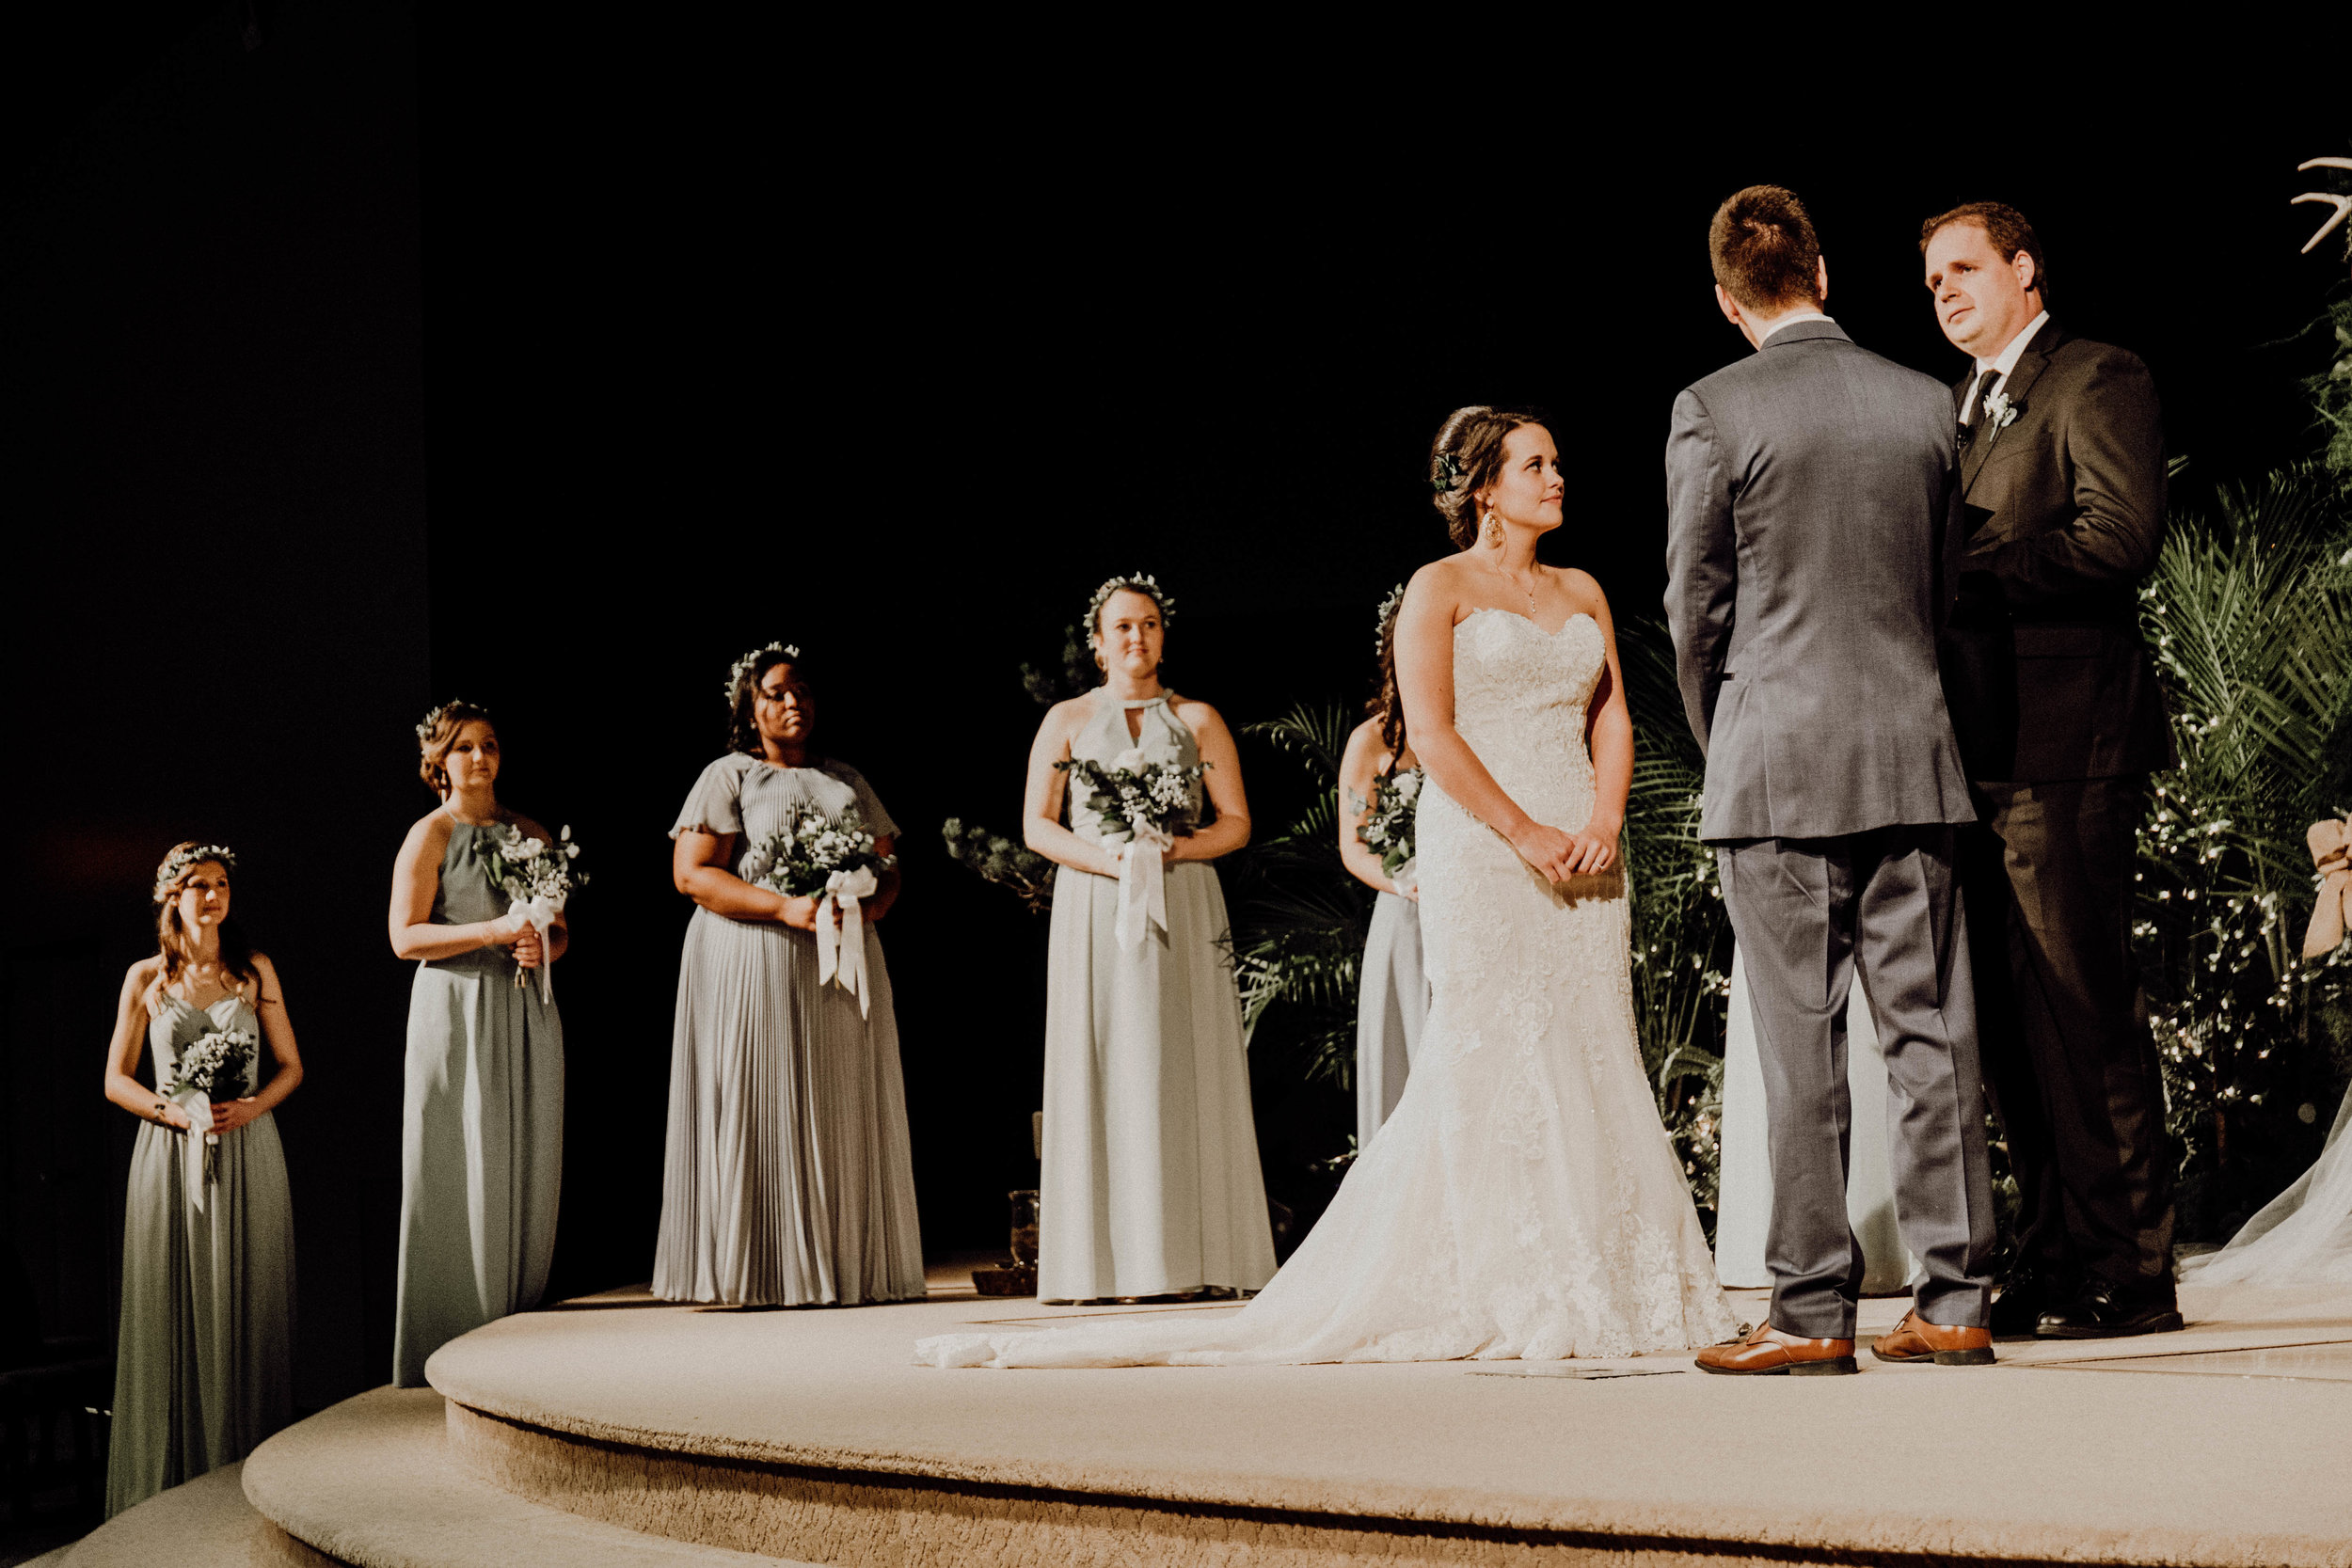 wedding (11 of 38).jpg